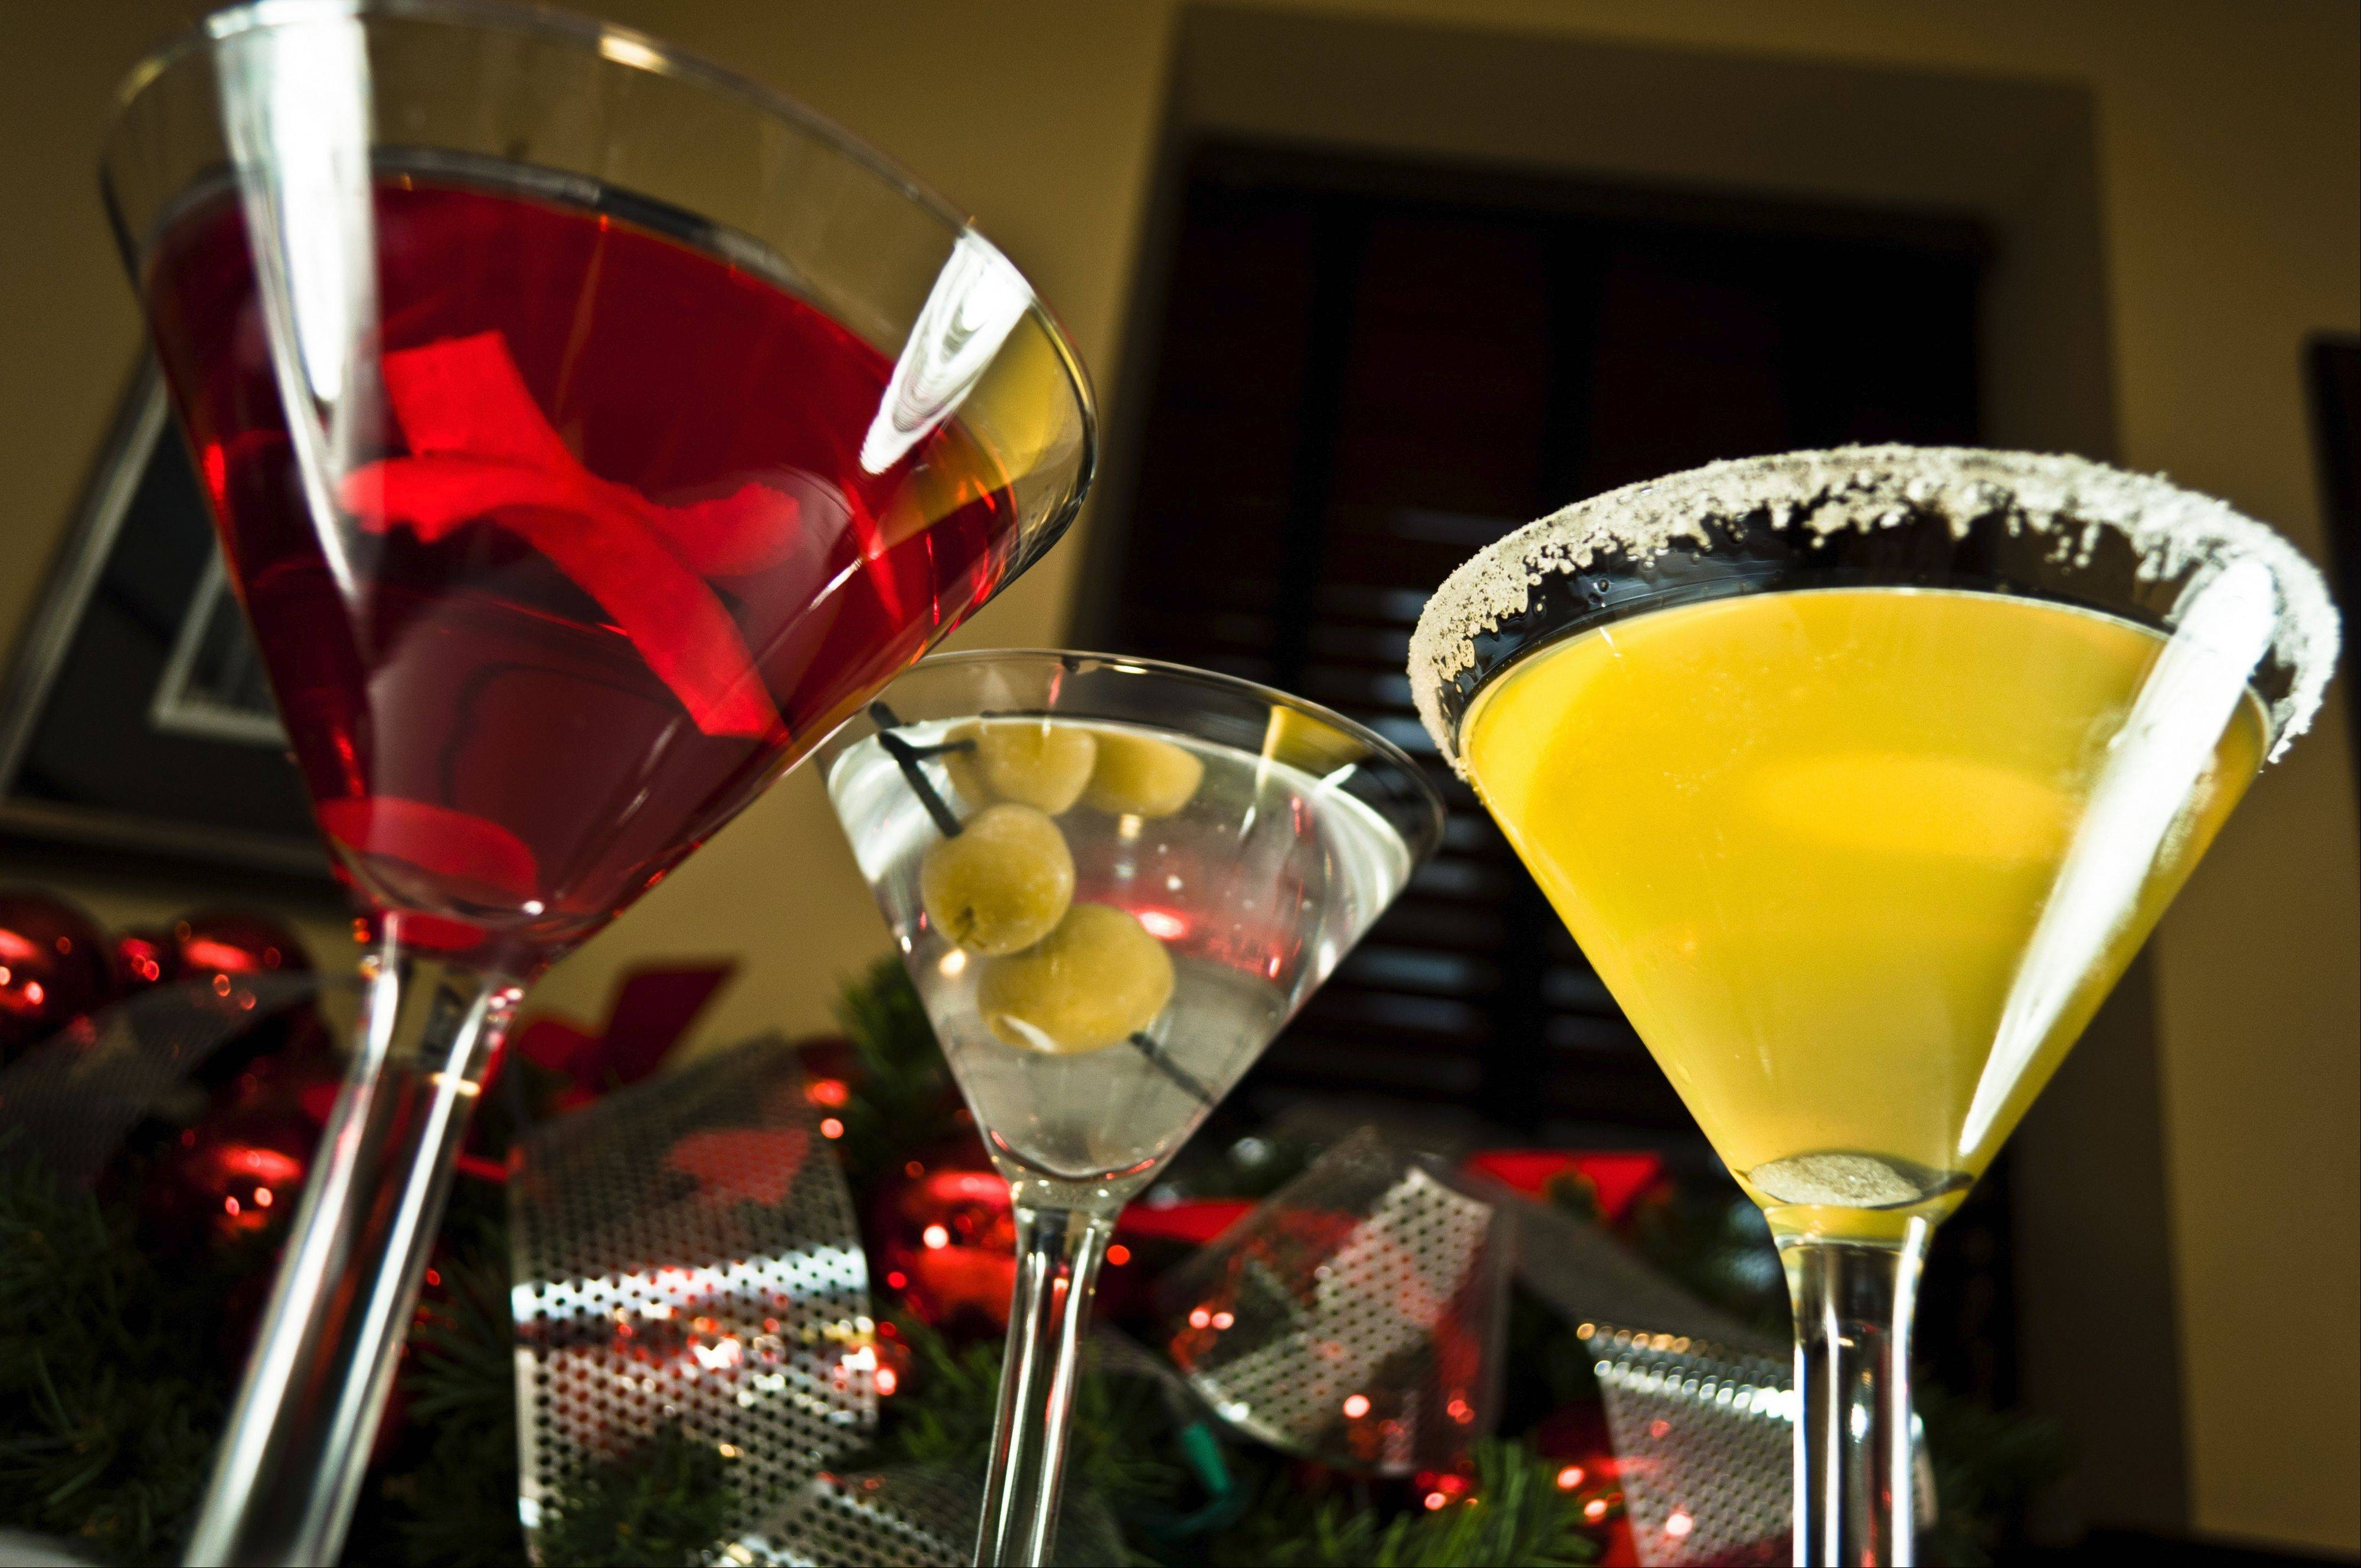 Stop in Tuscany or Stefani Restaurants' Chicago locations for aMerry Martini.